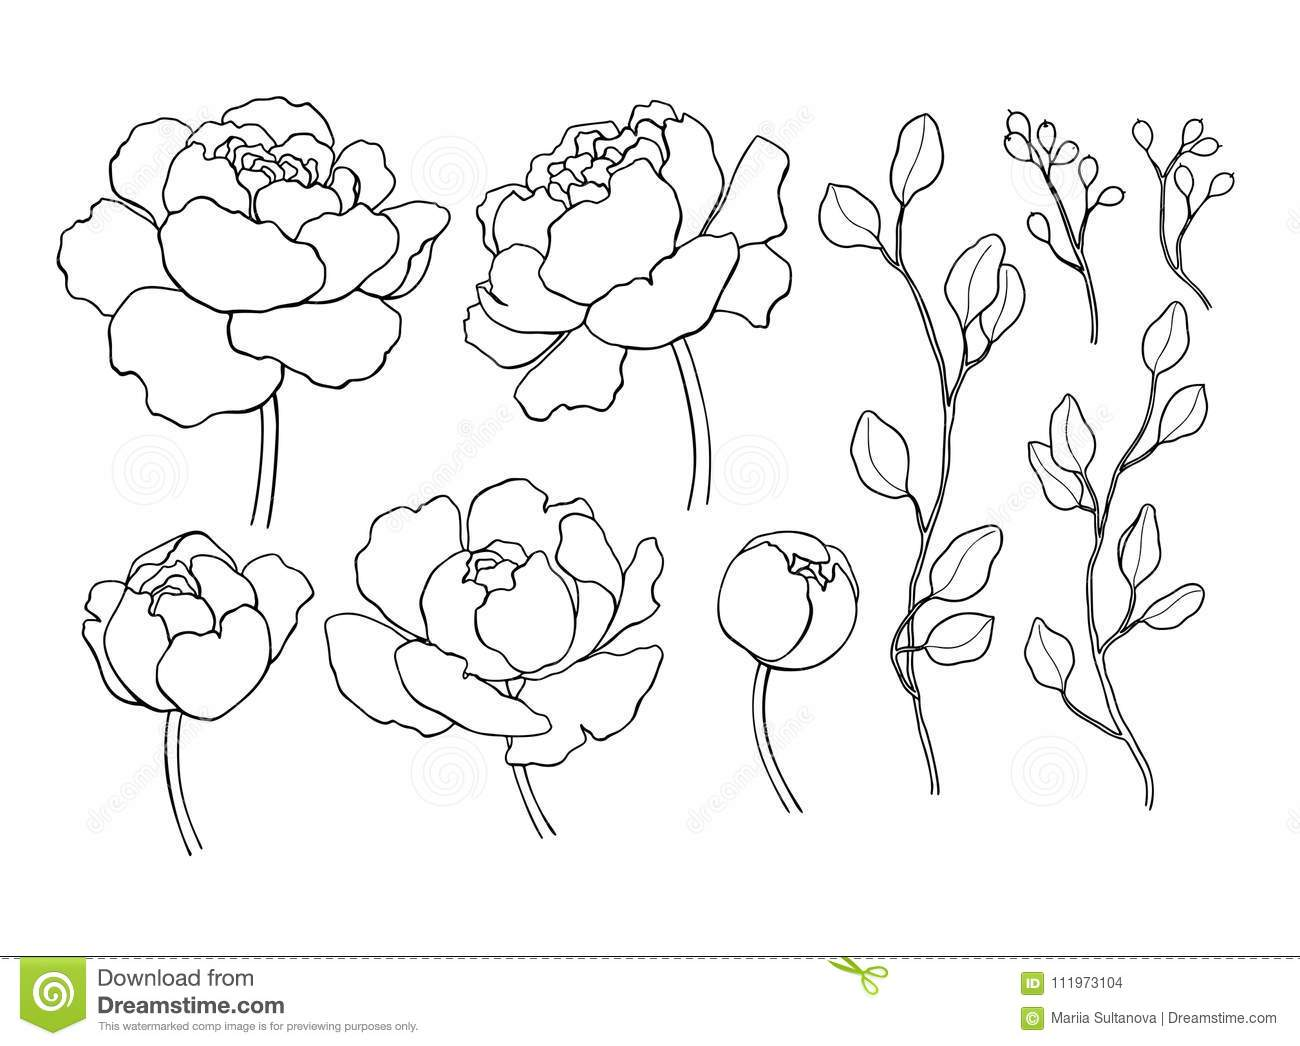 flower outline clipart